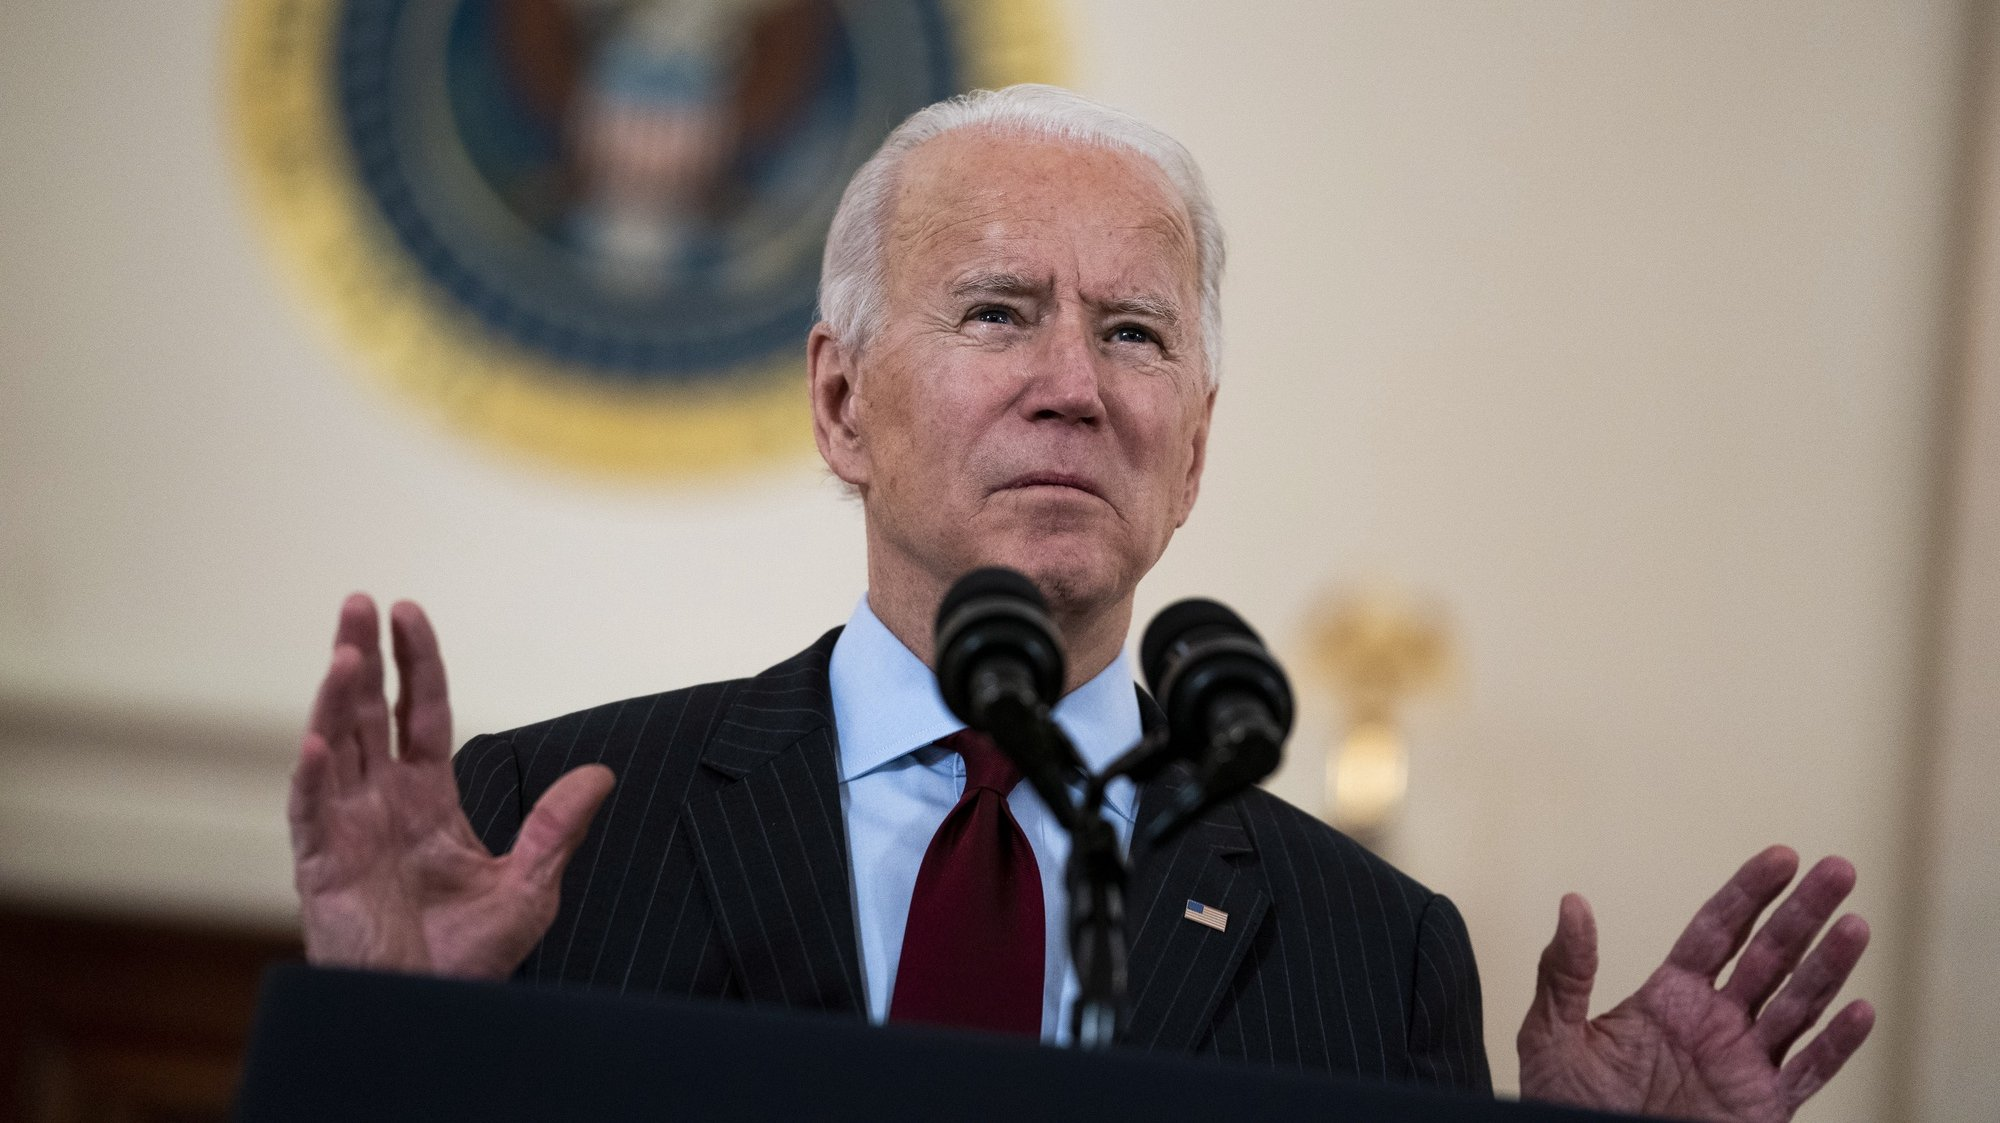 epa09030529 US President Joe Biden delivers remarks on the lives lost to COVID-19 in the Cross Hall of the White House, in Washington, DC, USA, 22 February 2021.  EPA/Doug Mills / POOL